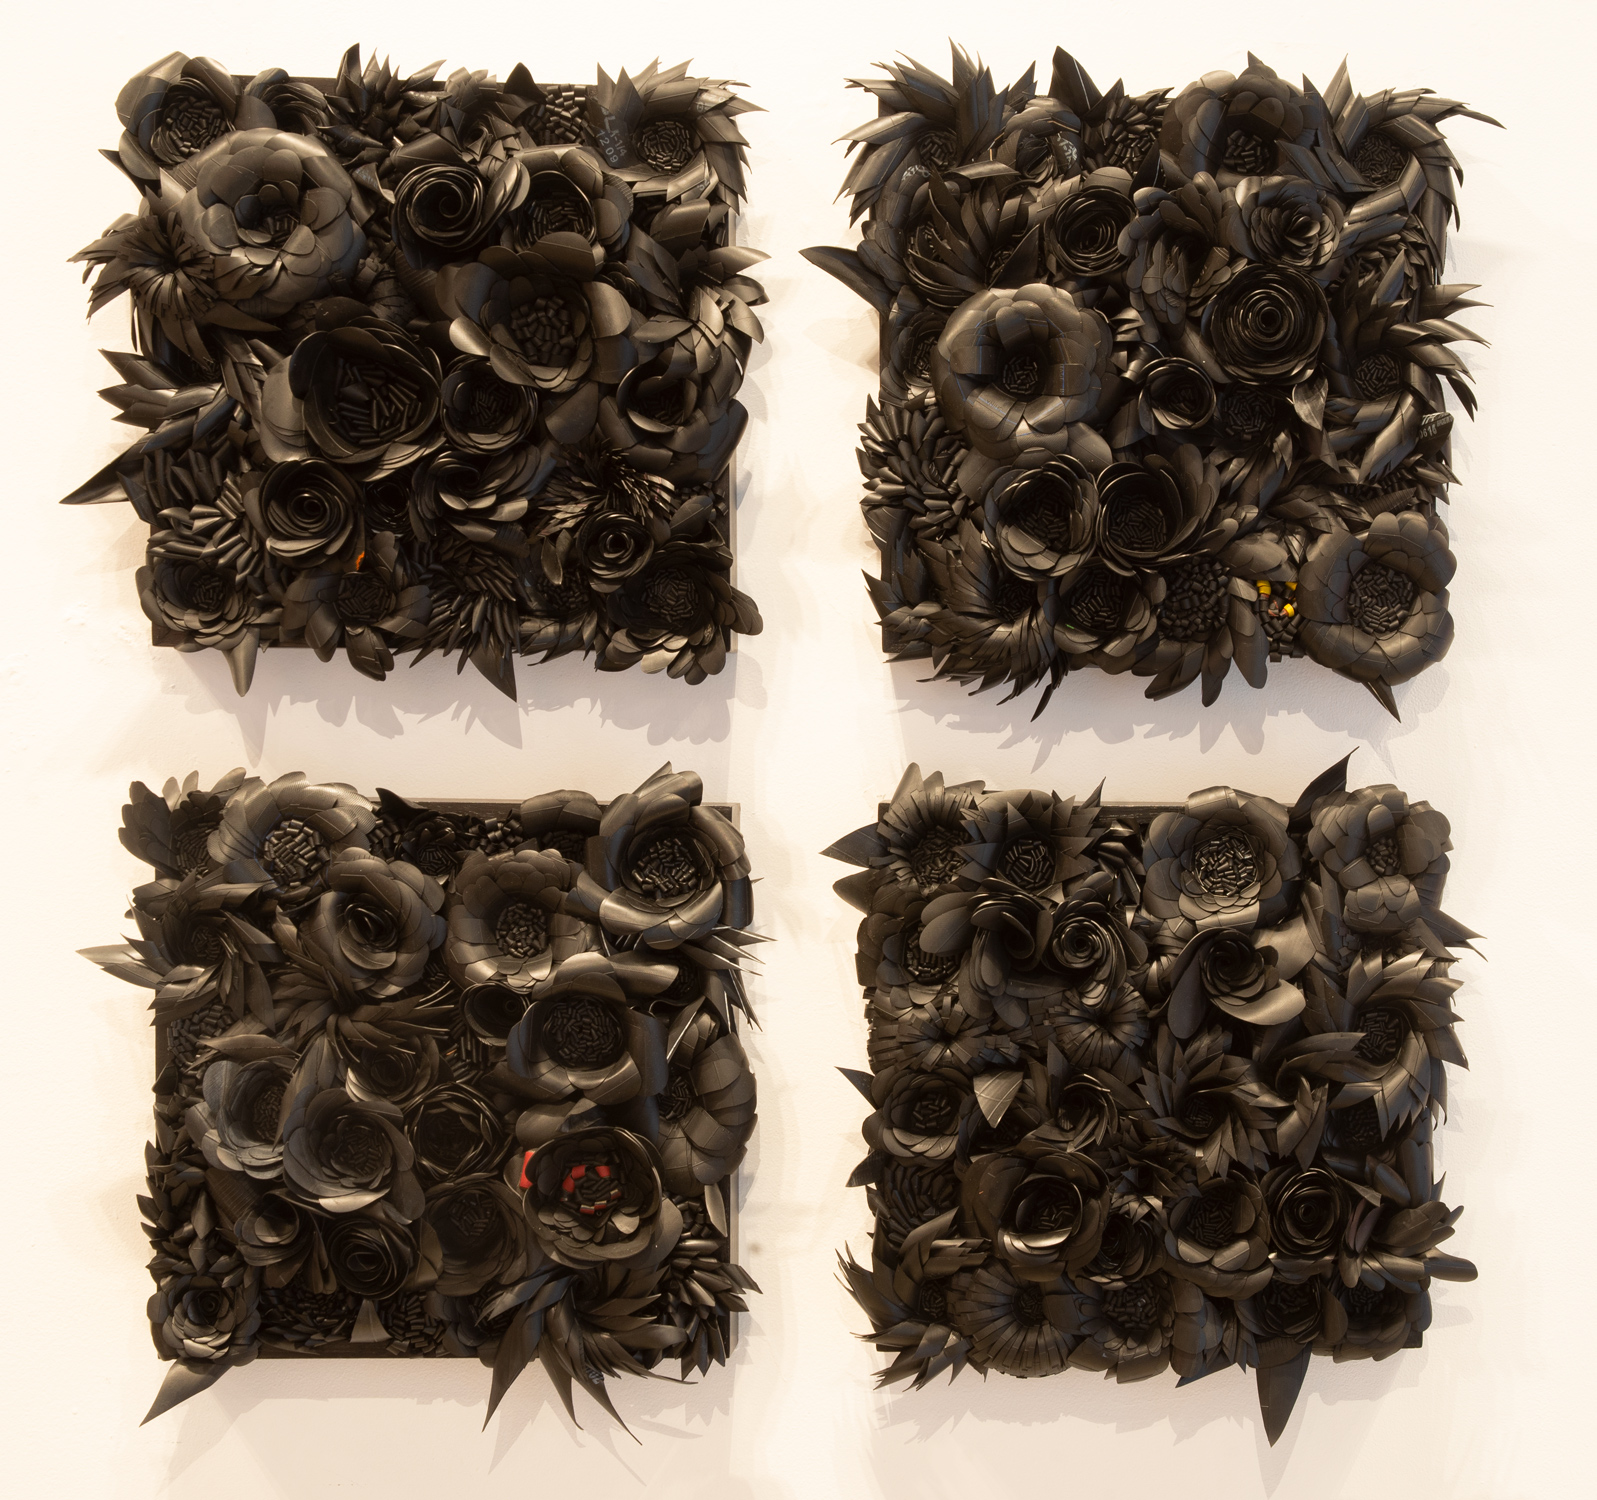 Ani Hoover  Rubber Gardens , 2019  Post-consumer bicycle tubes in a wood frame 30 × 30 in